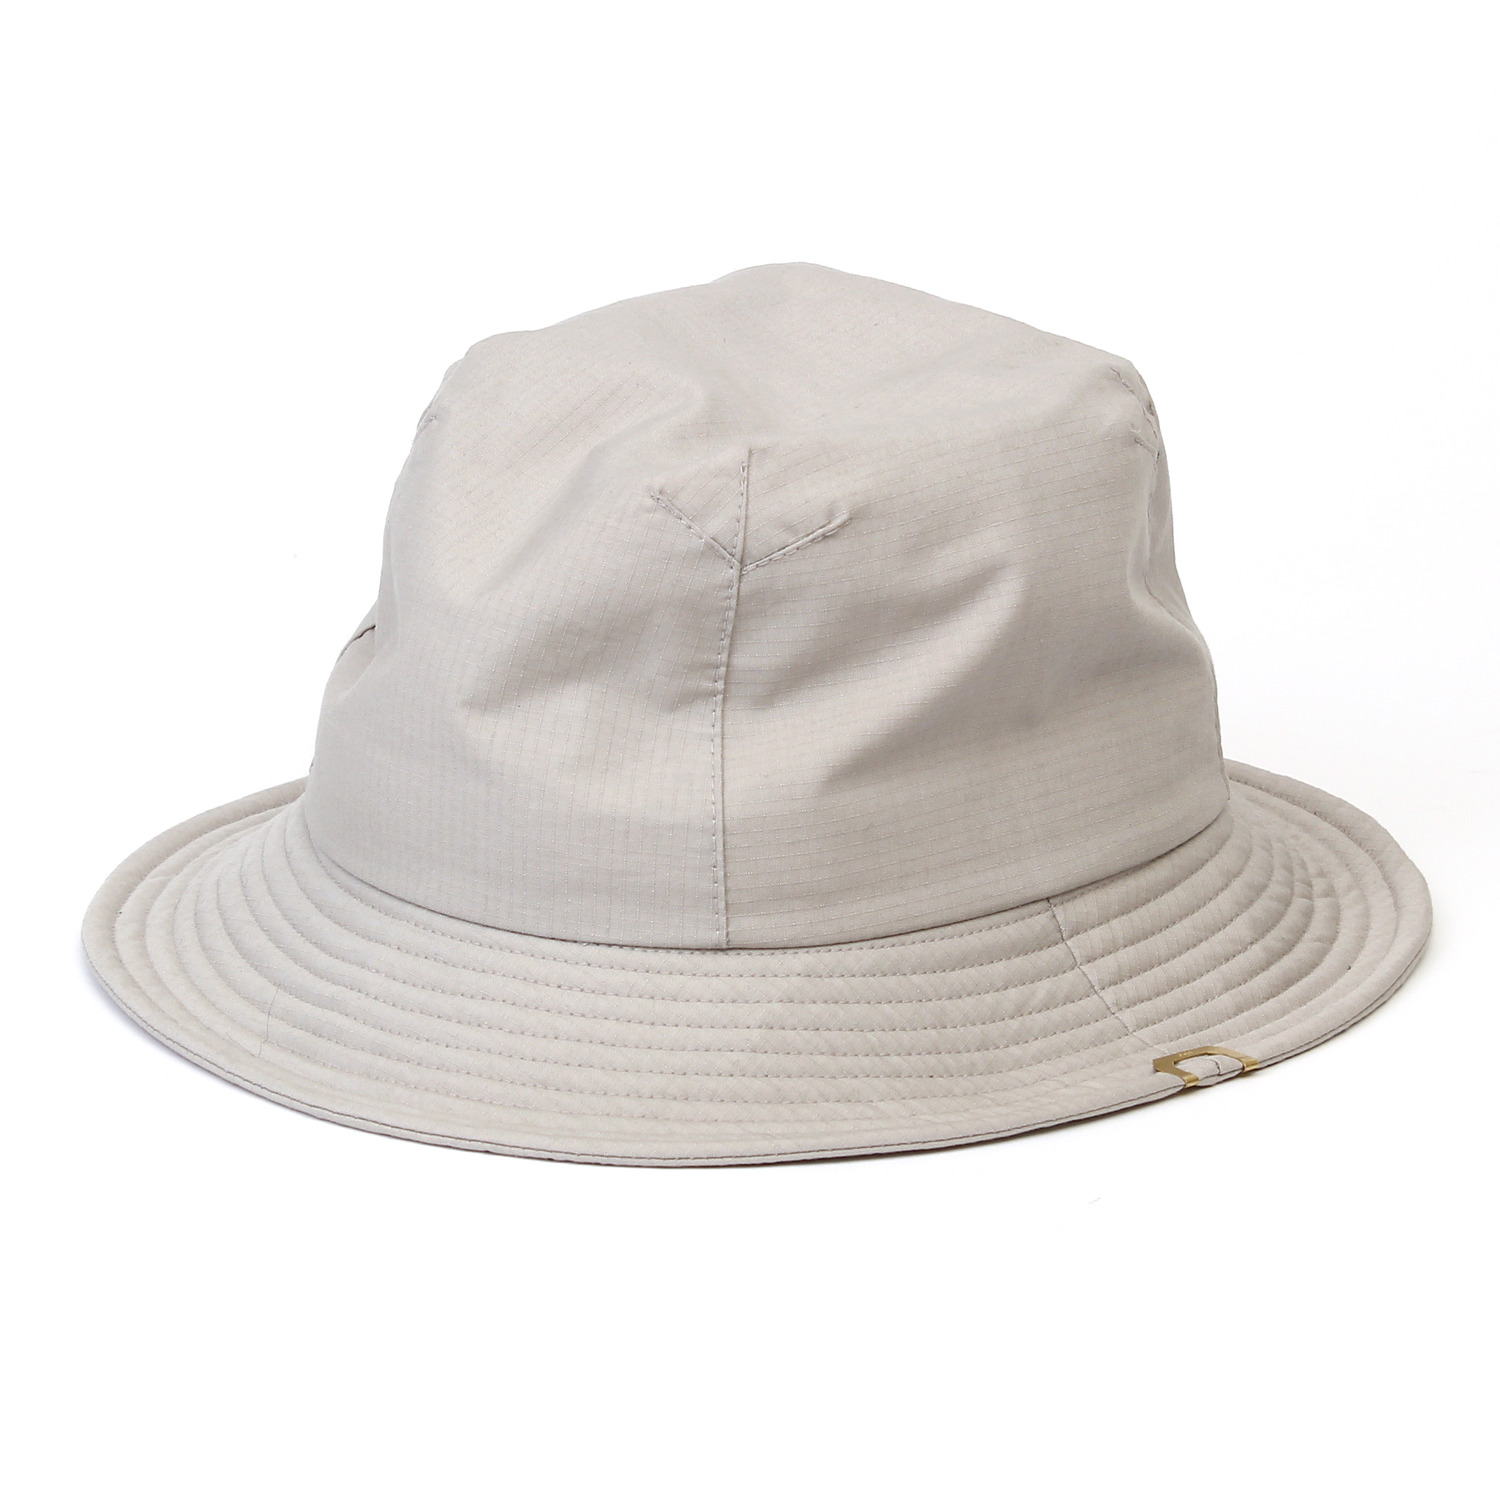 [3차 재입고] MOUNTAIN HAT / CN RIP / OATMEAL